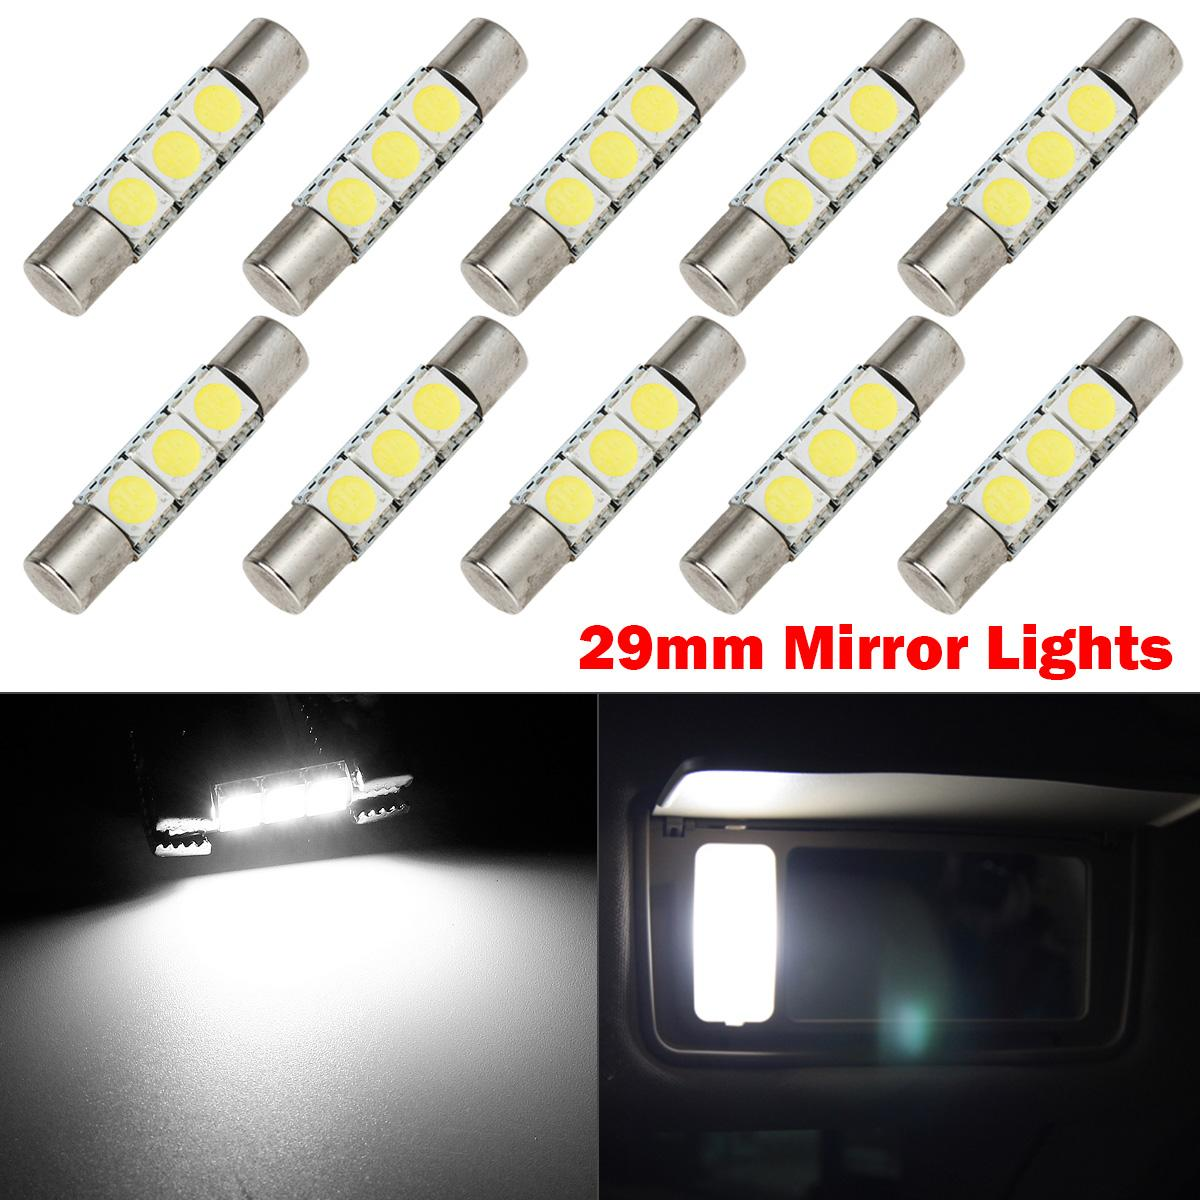 10PCS 3 SMD 6614F Fuse LED Sun Visor Vanity Mirror Lights Bright White EBay